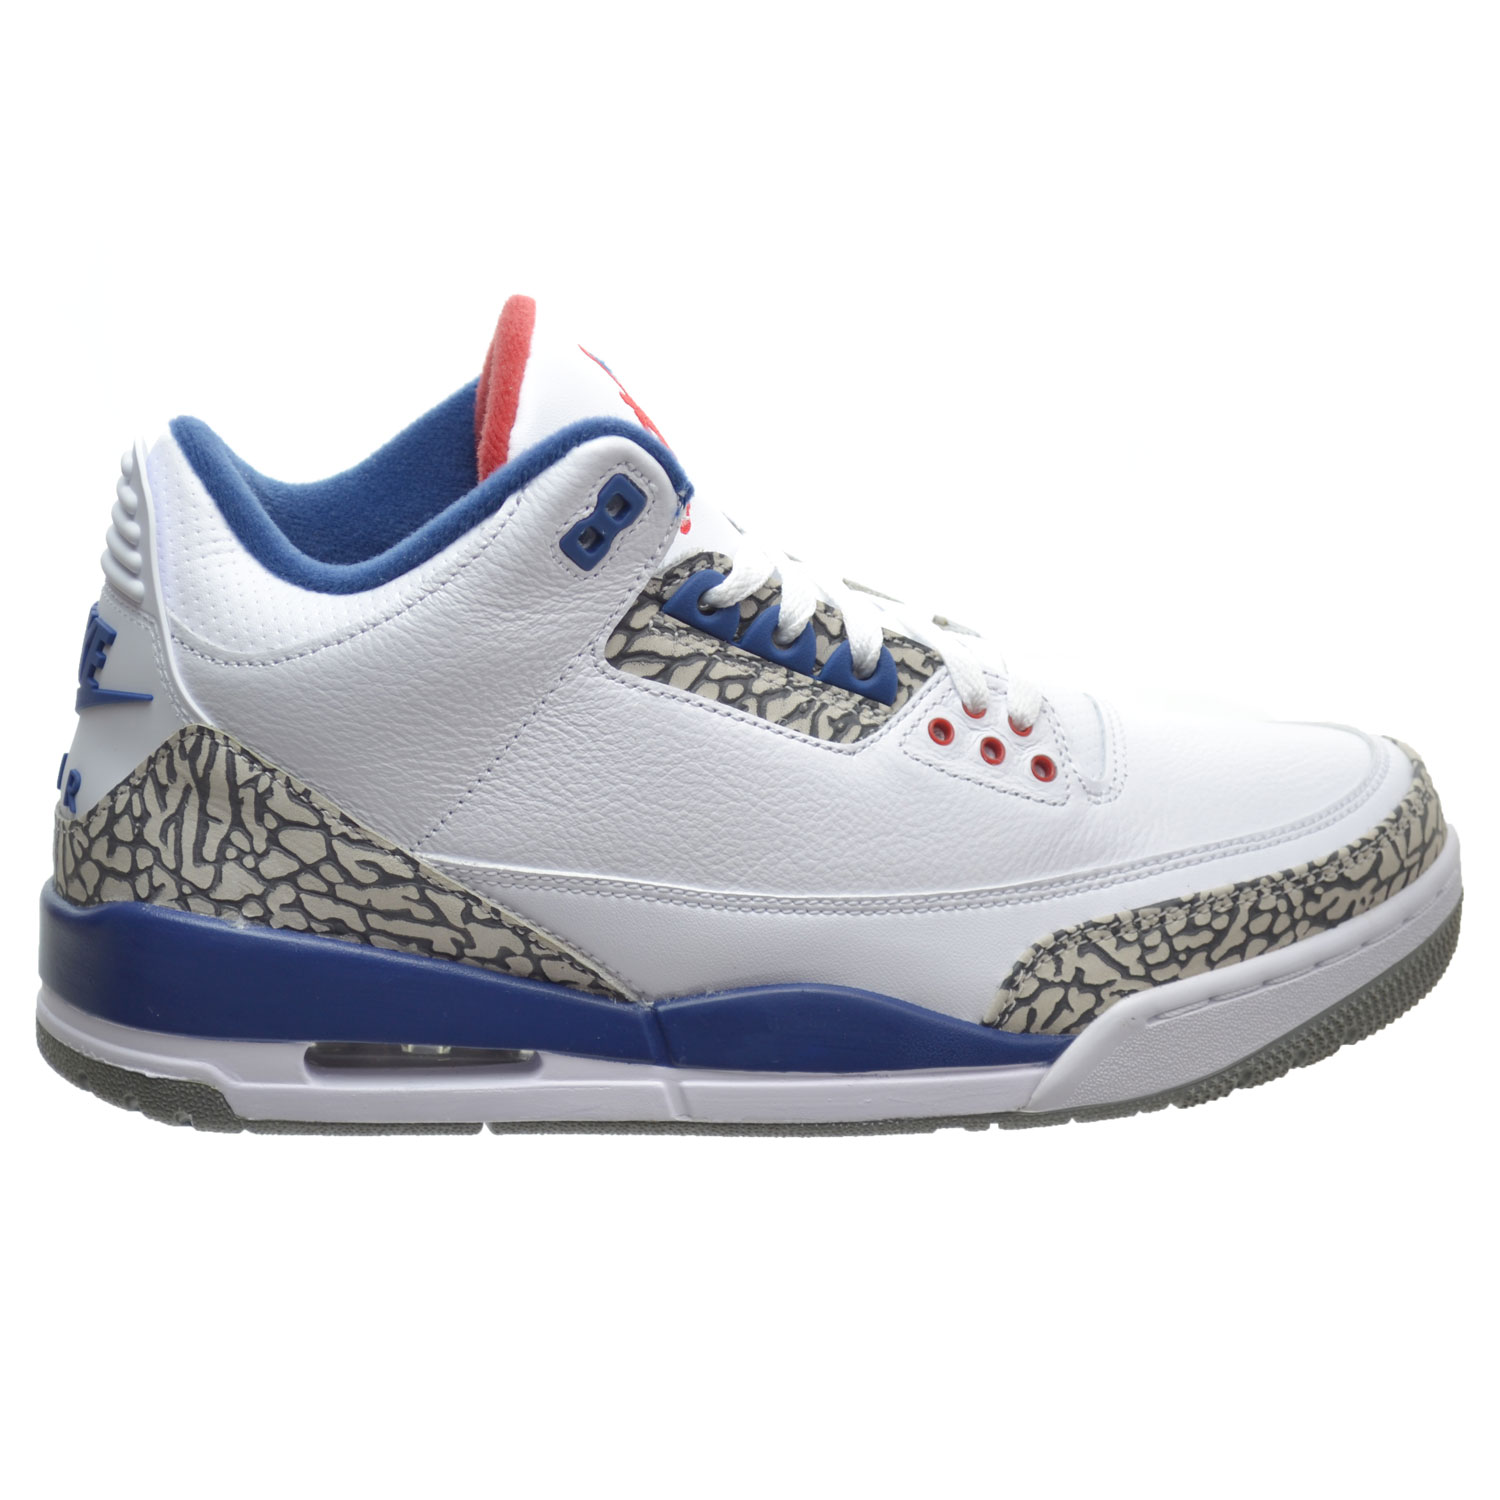 d8a56c4763db54 Air Jordan 3 Retro OG Men s Shoes White Fire Red True Blue 854262 ...